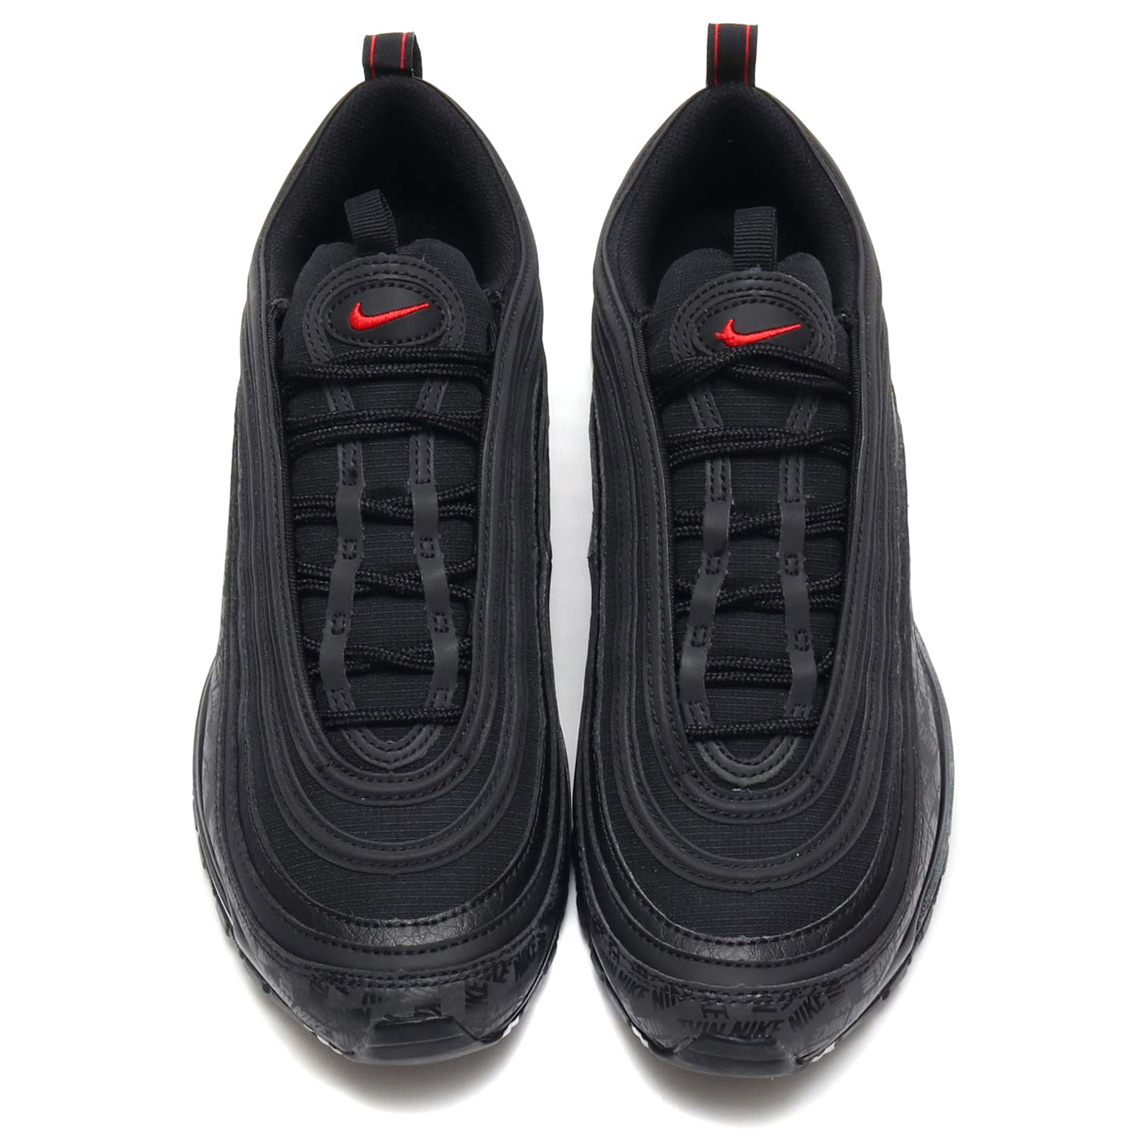 nike air max 97 reflective trainer black / university red